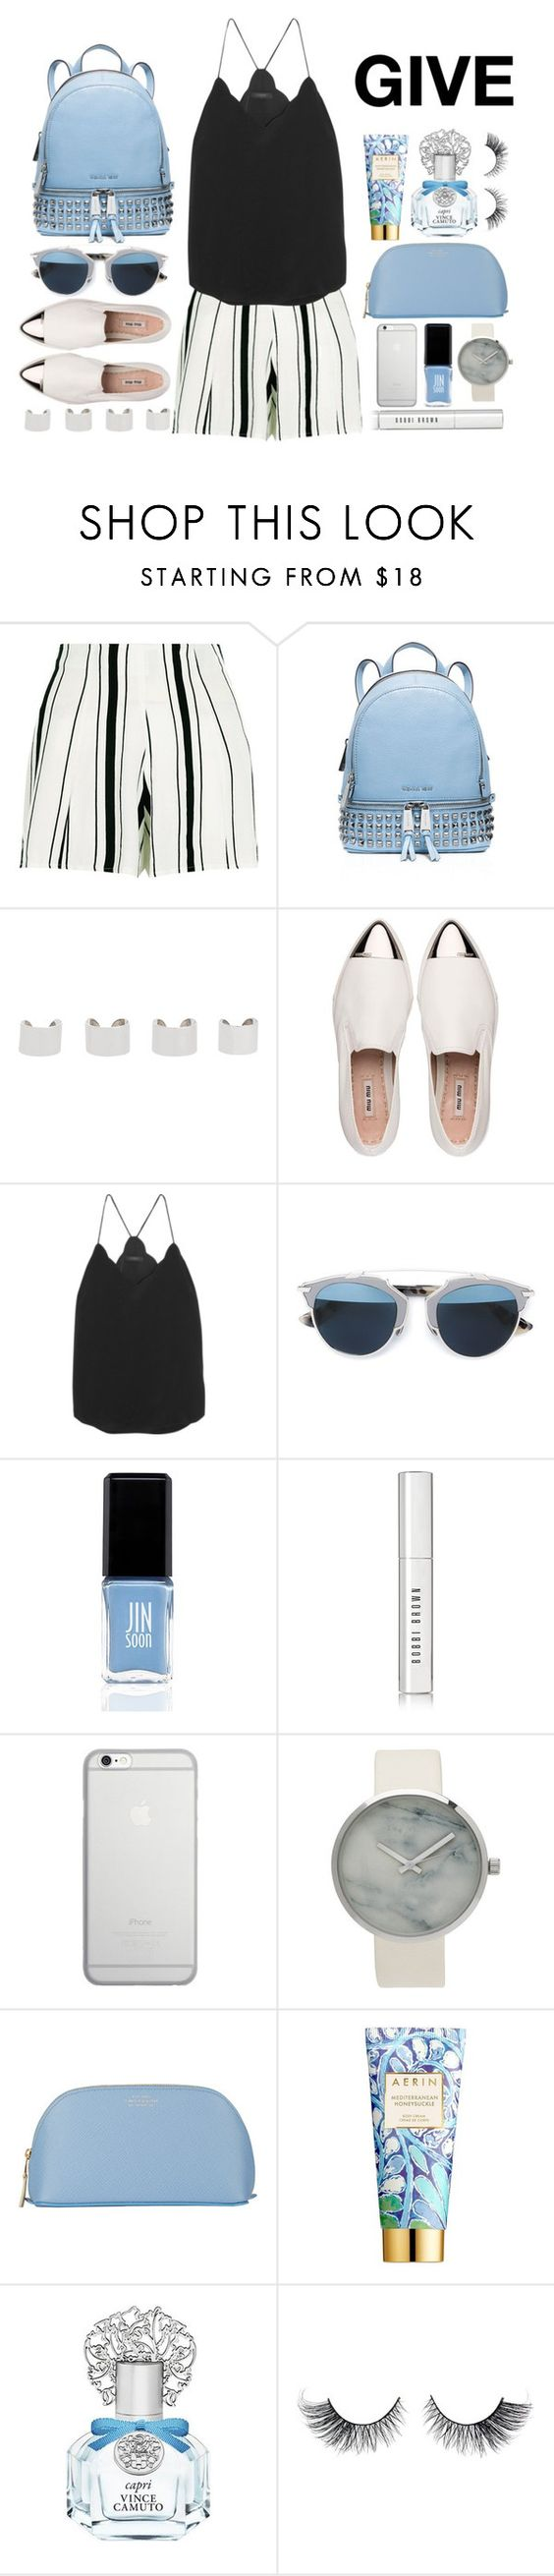 """GIVE"" by perilousness-fashion ❤ liked on Polyvore featuring New Look, MICHAEL Michael Kors, Maison Margiela, Miu Miu, J.Crew, Christian Dior, JINsoon, Bobbi Brown Cosmetics, Native Union and Smythson"